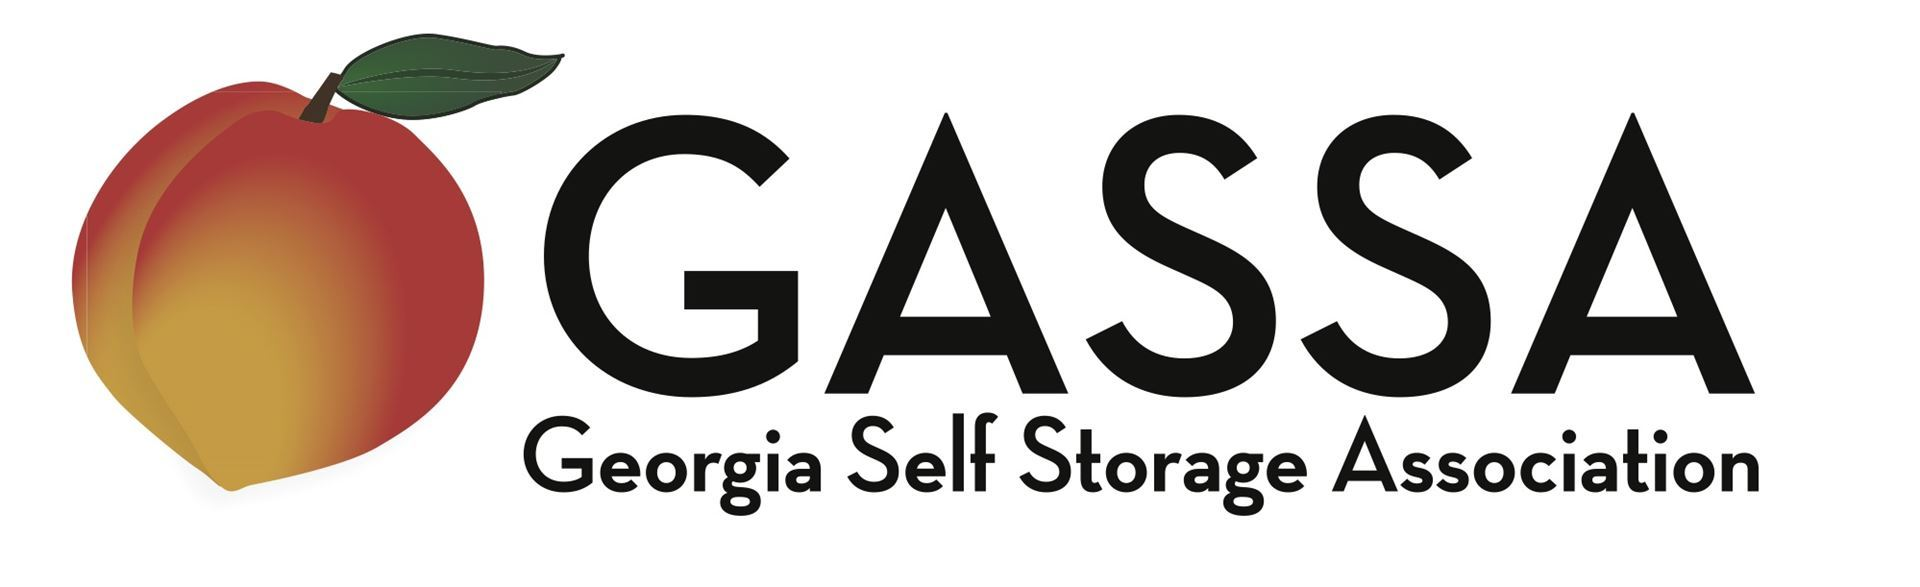 Georgia Self Storage Association logo